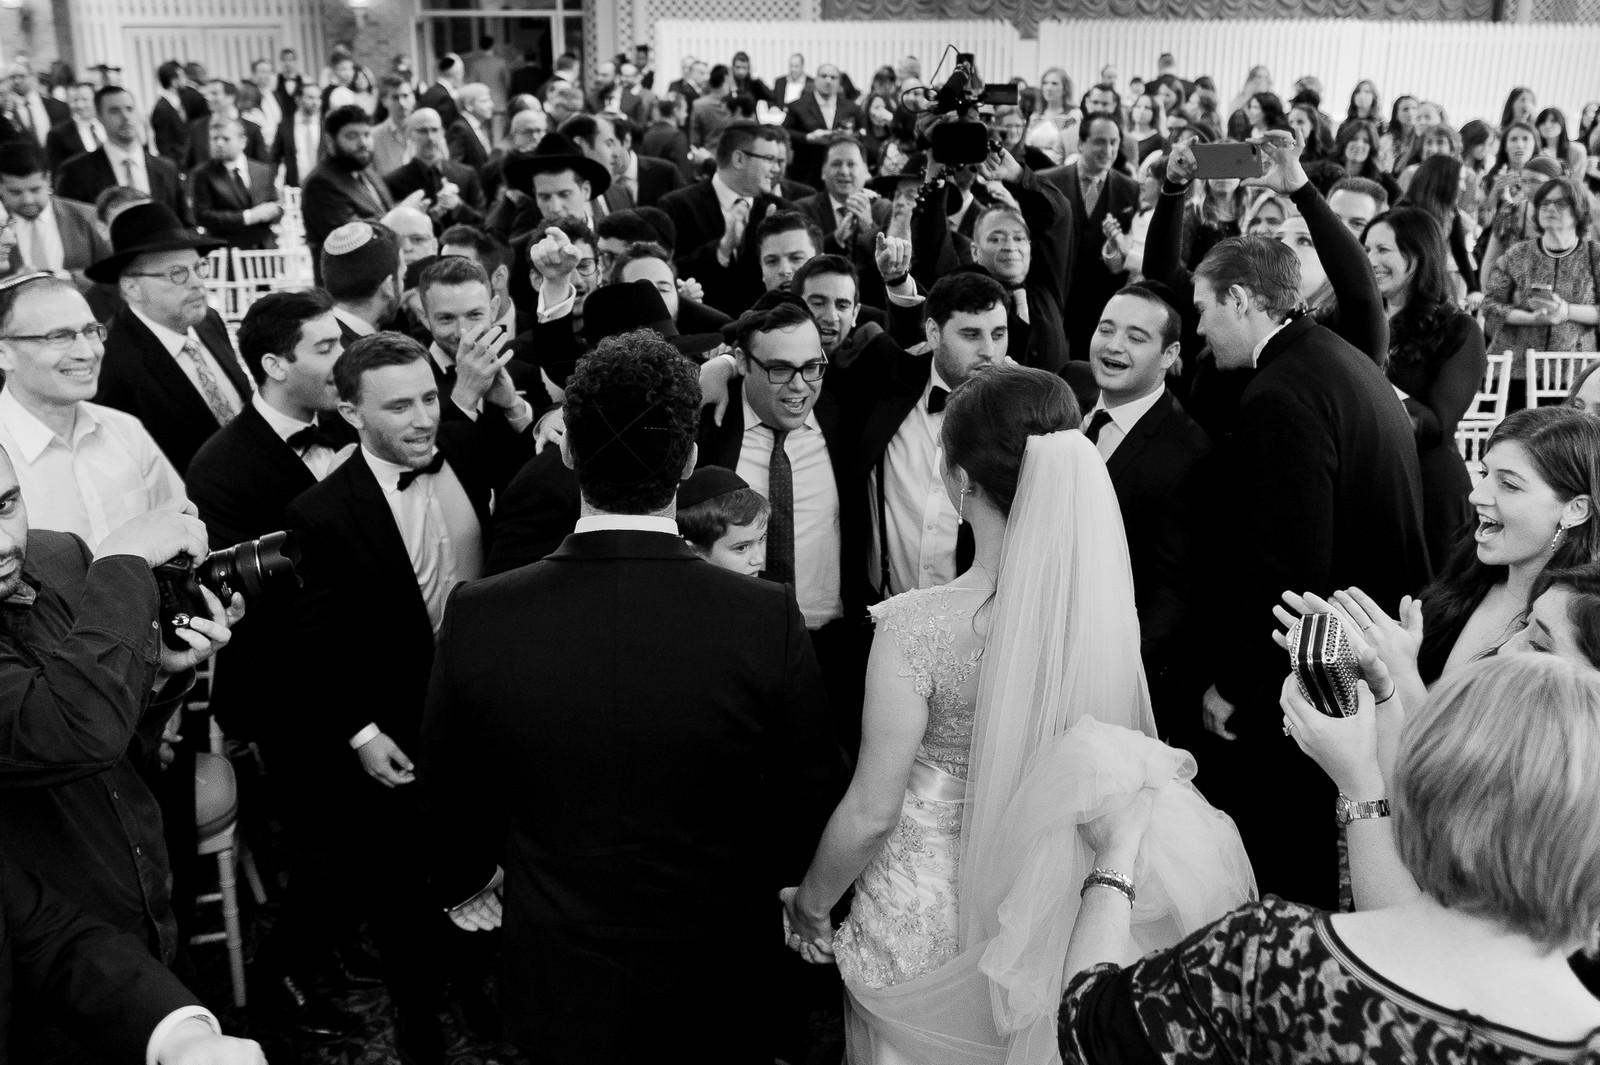 Yoey and Aaron's Memorial Day Modern Jewish Wedding at Anthony's Pier 9, New Windsor, NY Photos by Chaim Schvarcz bride groom dancing